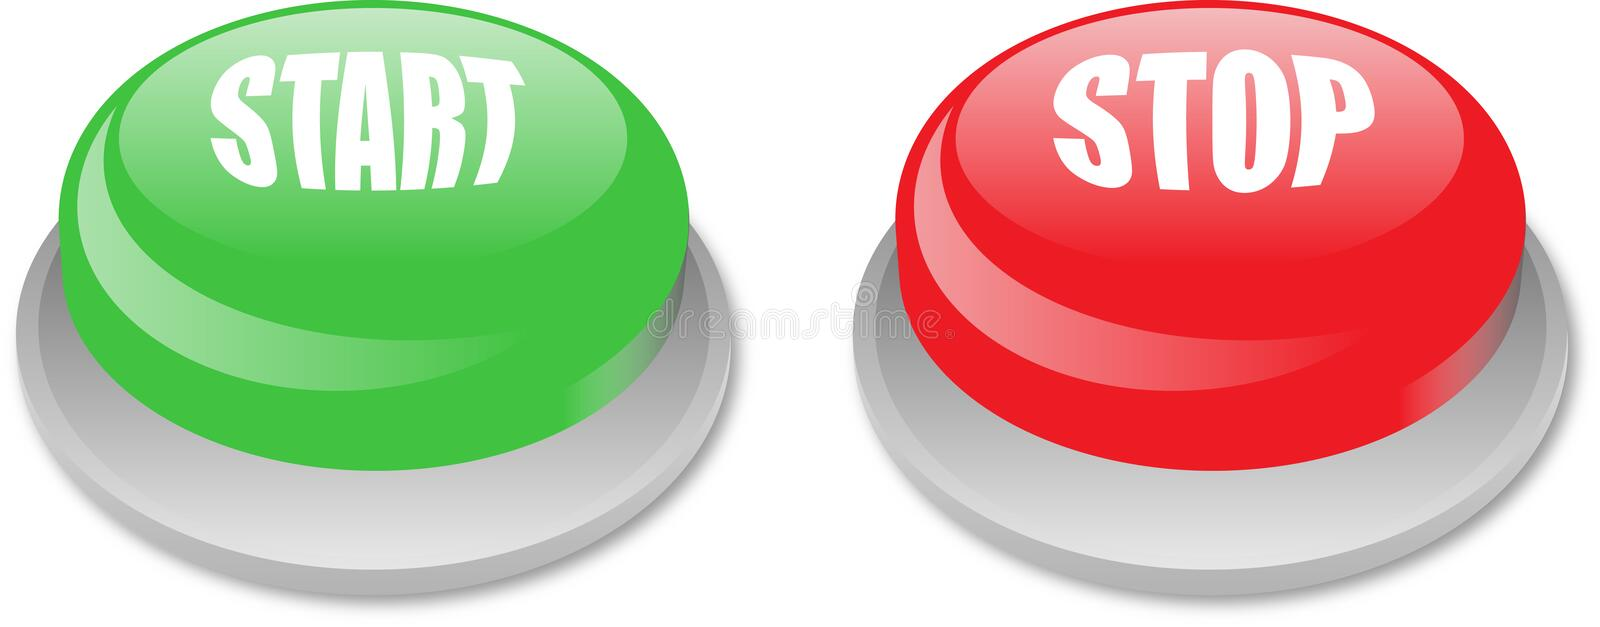 Download Start stop button stock vector. Image of shiny, green - 16939470